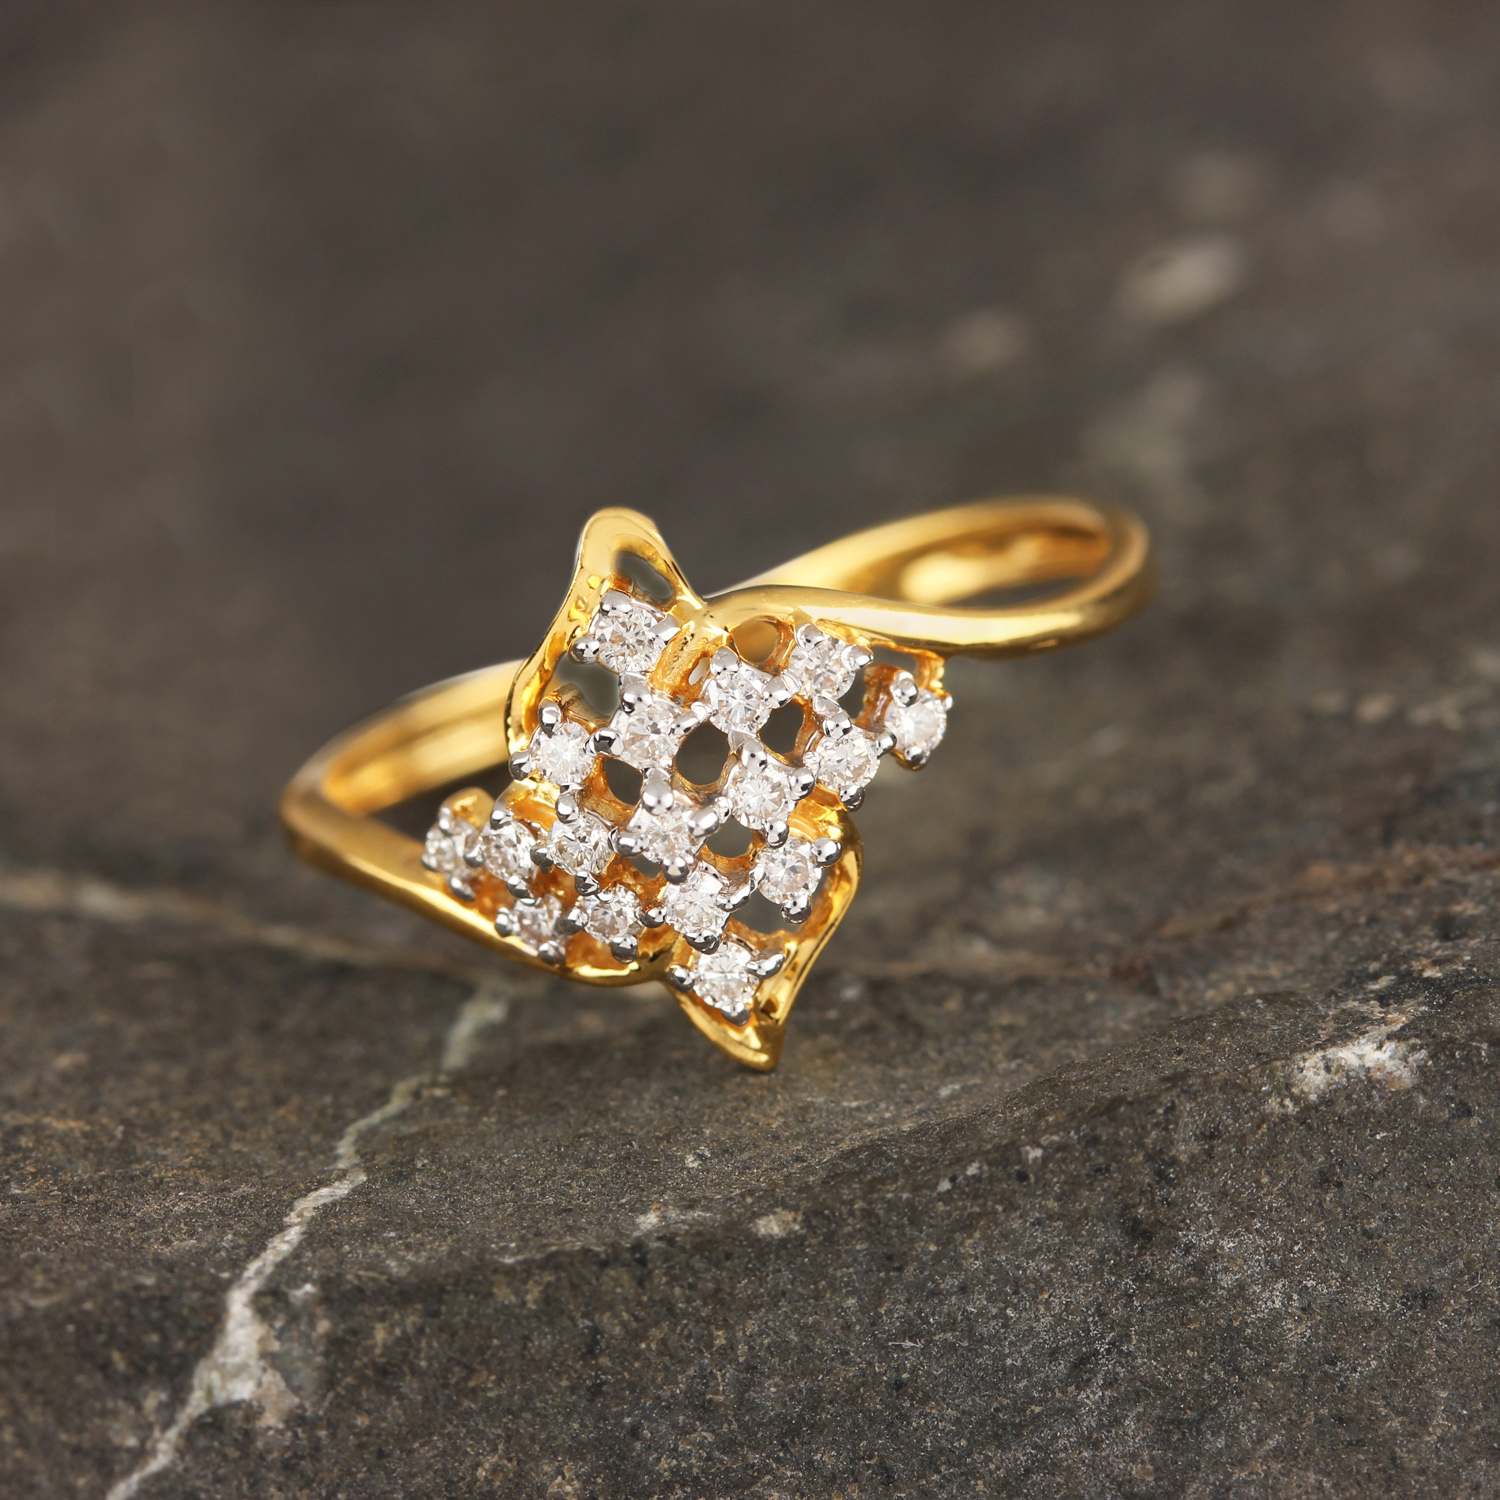 Gold With Diamond Ring